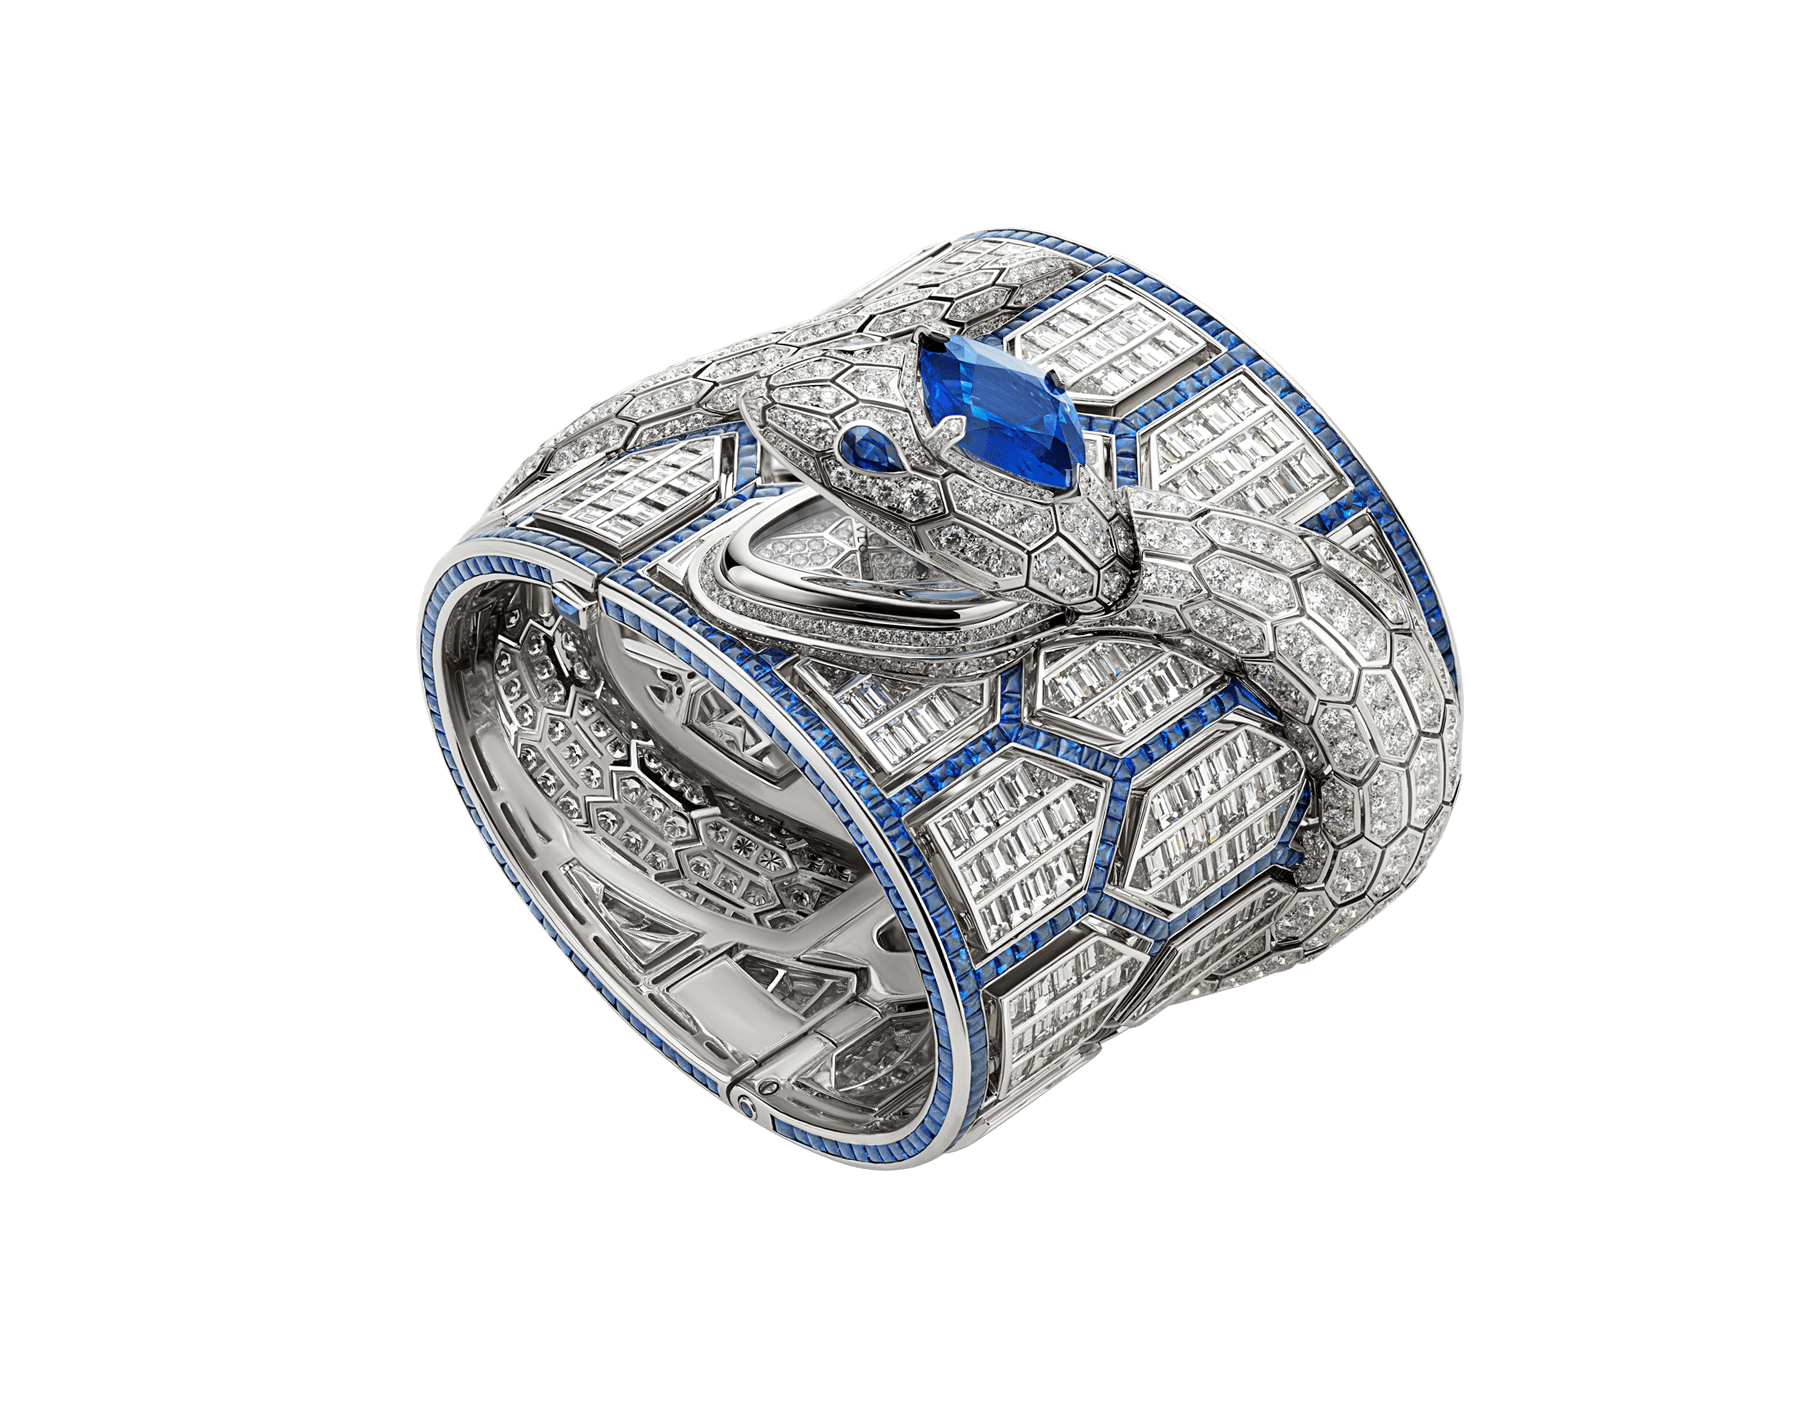 Serpenti Misteriosi Romani watch with 18 kt white gold handcuff set with baguette-cut sapphires and diamonds, body of a snake in 18 kt white gold set with round brilliant-cut diamonds, an oval faceted sapphire and two pear shaped sapphire eyes, and dial fully set with round brilliant-cut diamonds 102987 image 1